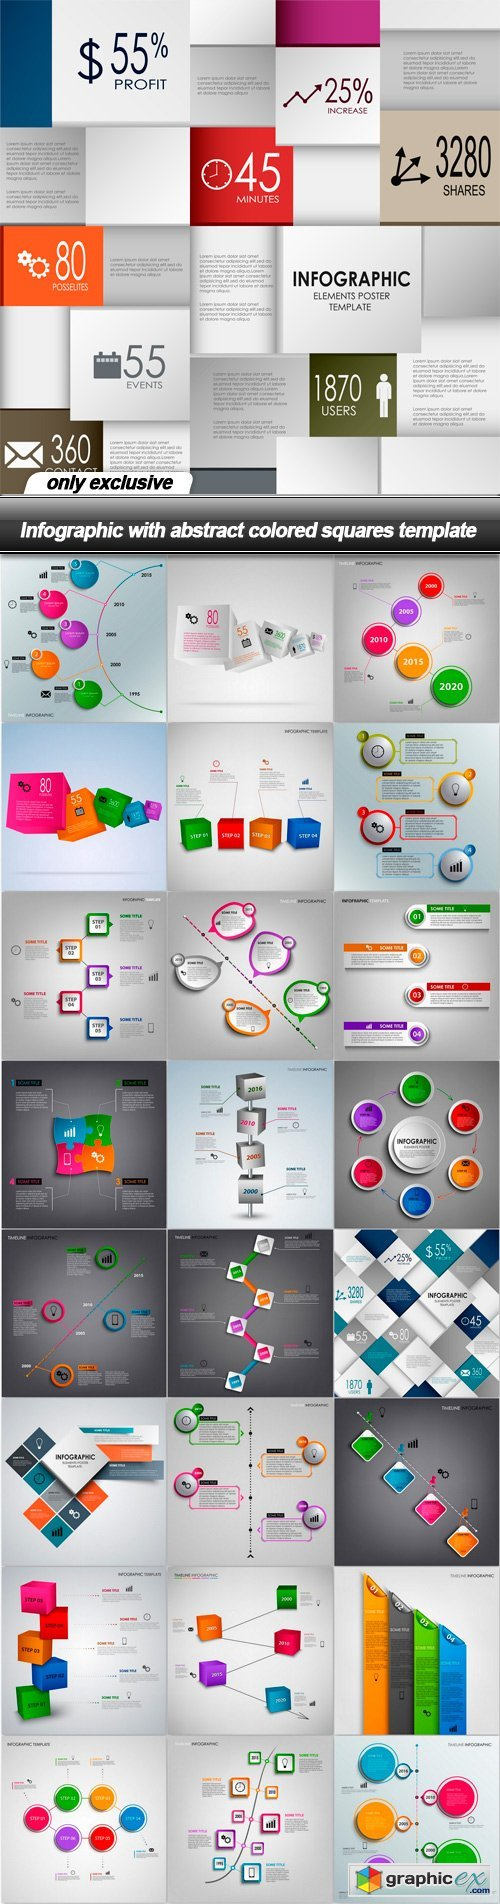 Infographic with abstract colored squares template - 25 EPS